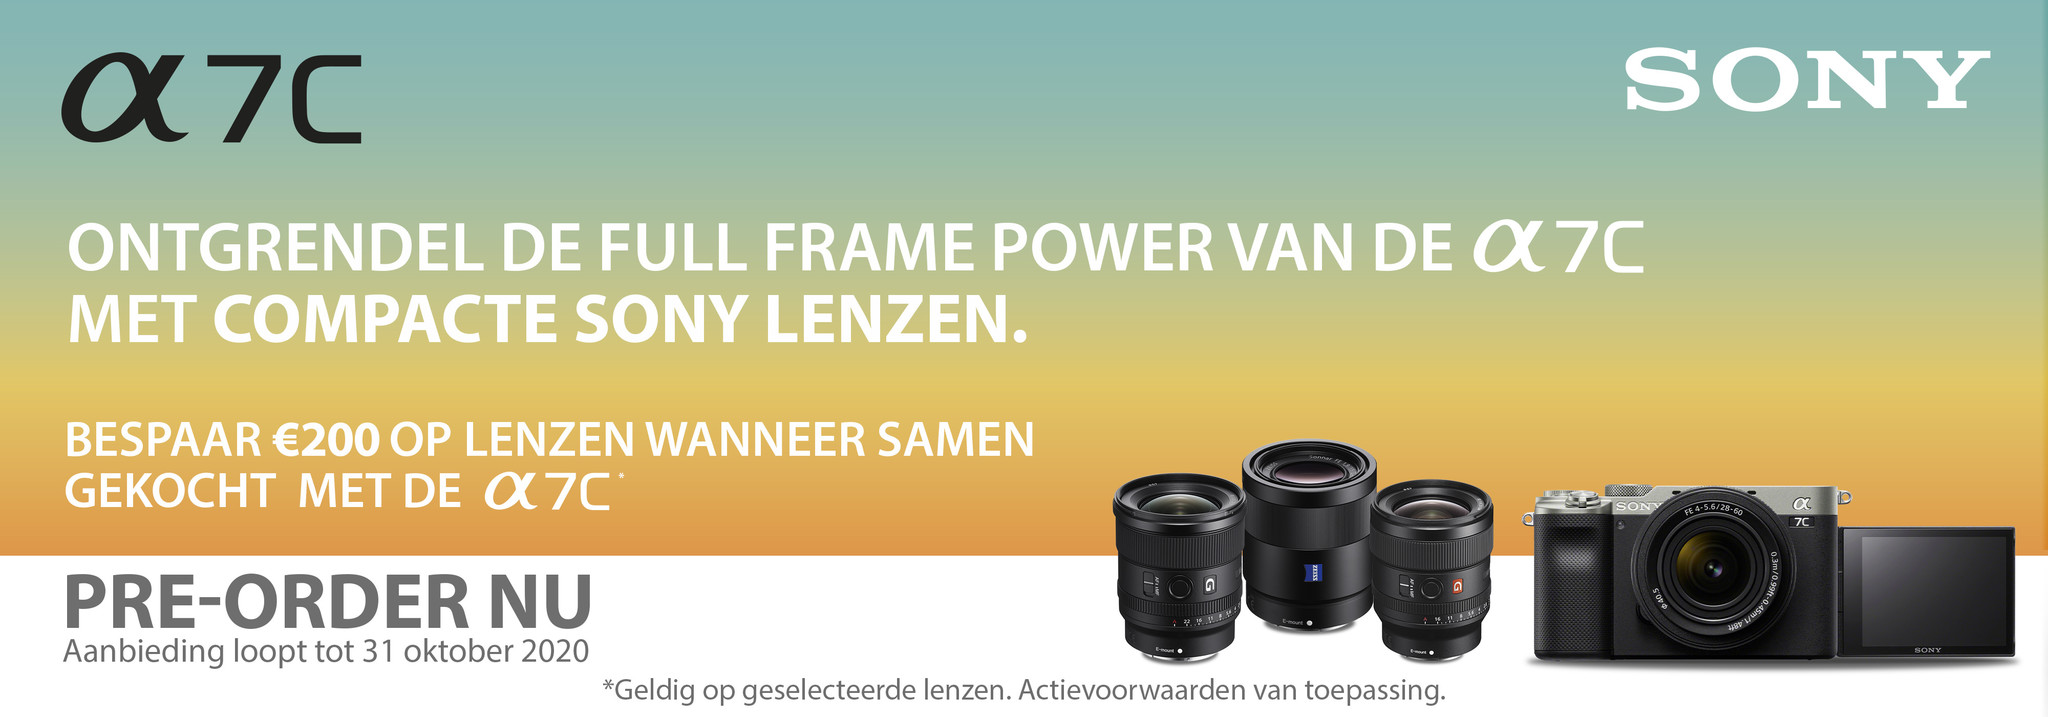 Sony A7C pre-order promotie korting